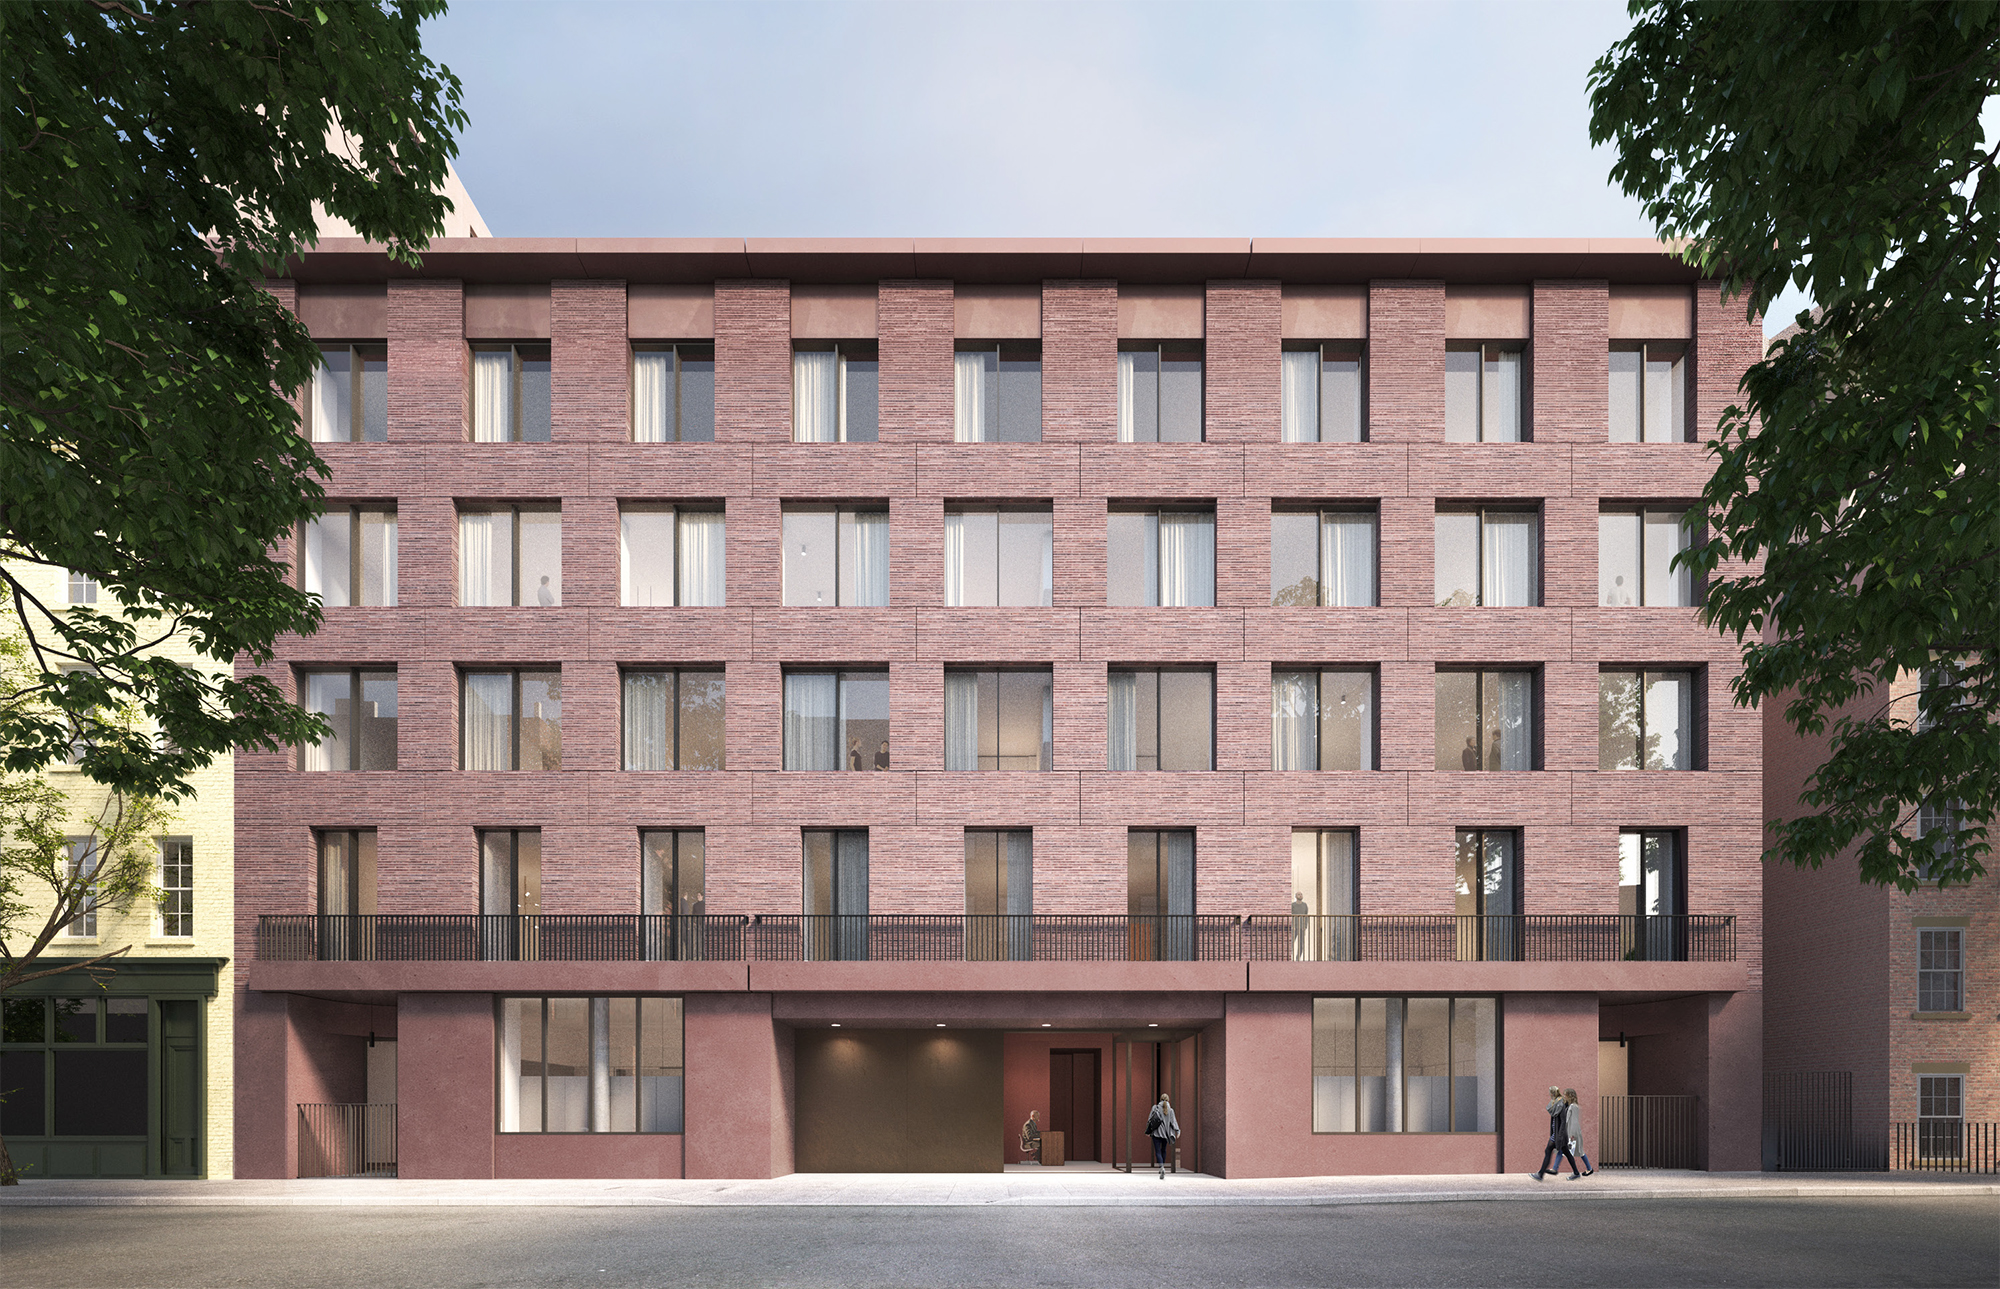 The latest proposal for 11-19 Jane Street, by Sir David Chipperfield